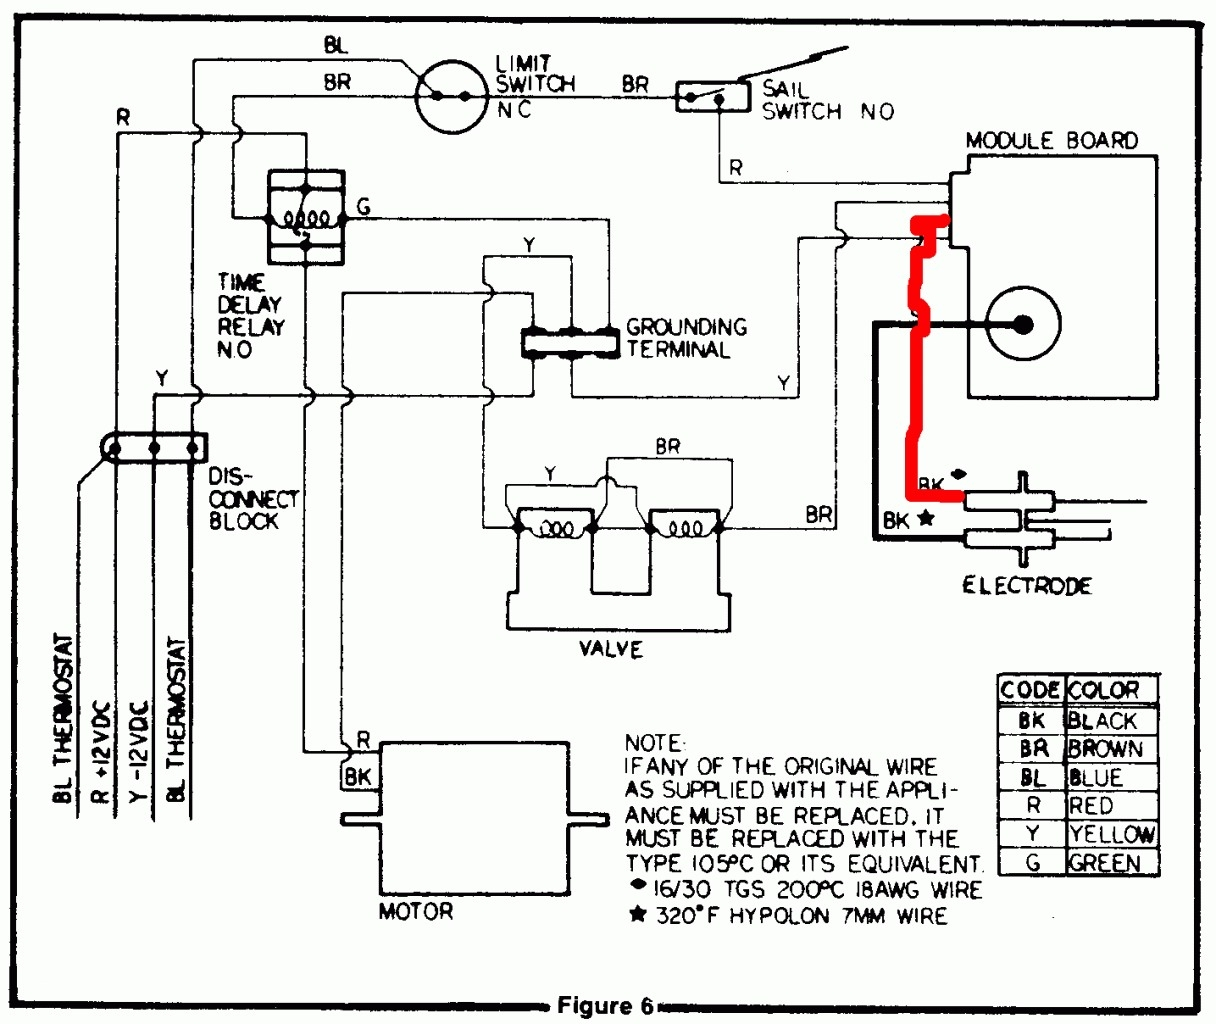 Hydro Flame Furnace Wiring Diagram Wiring Diagram Update